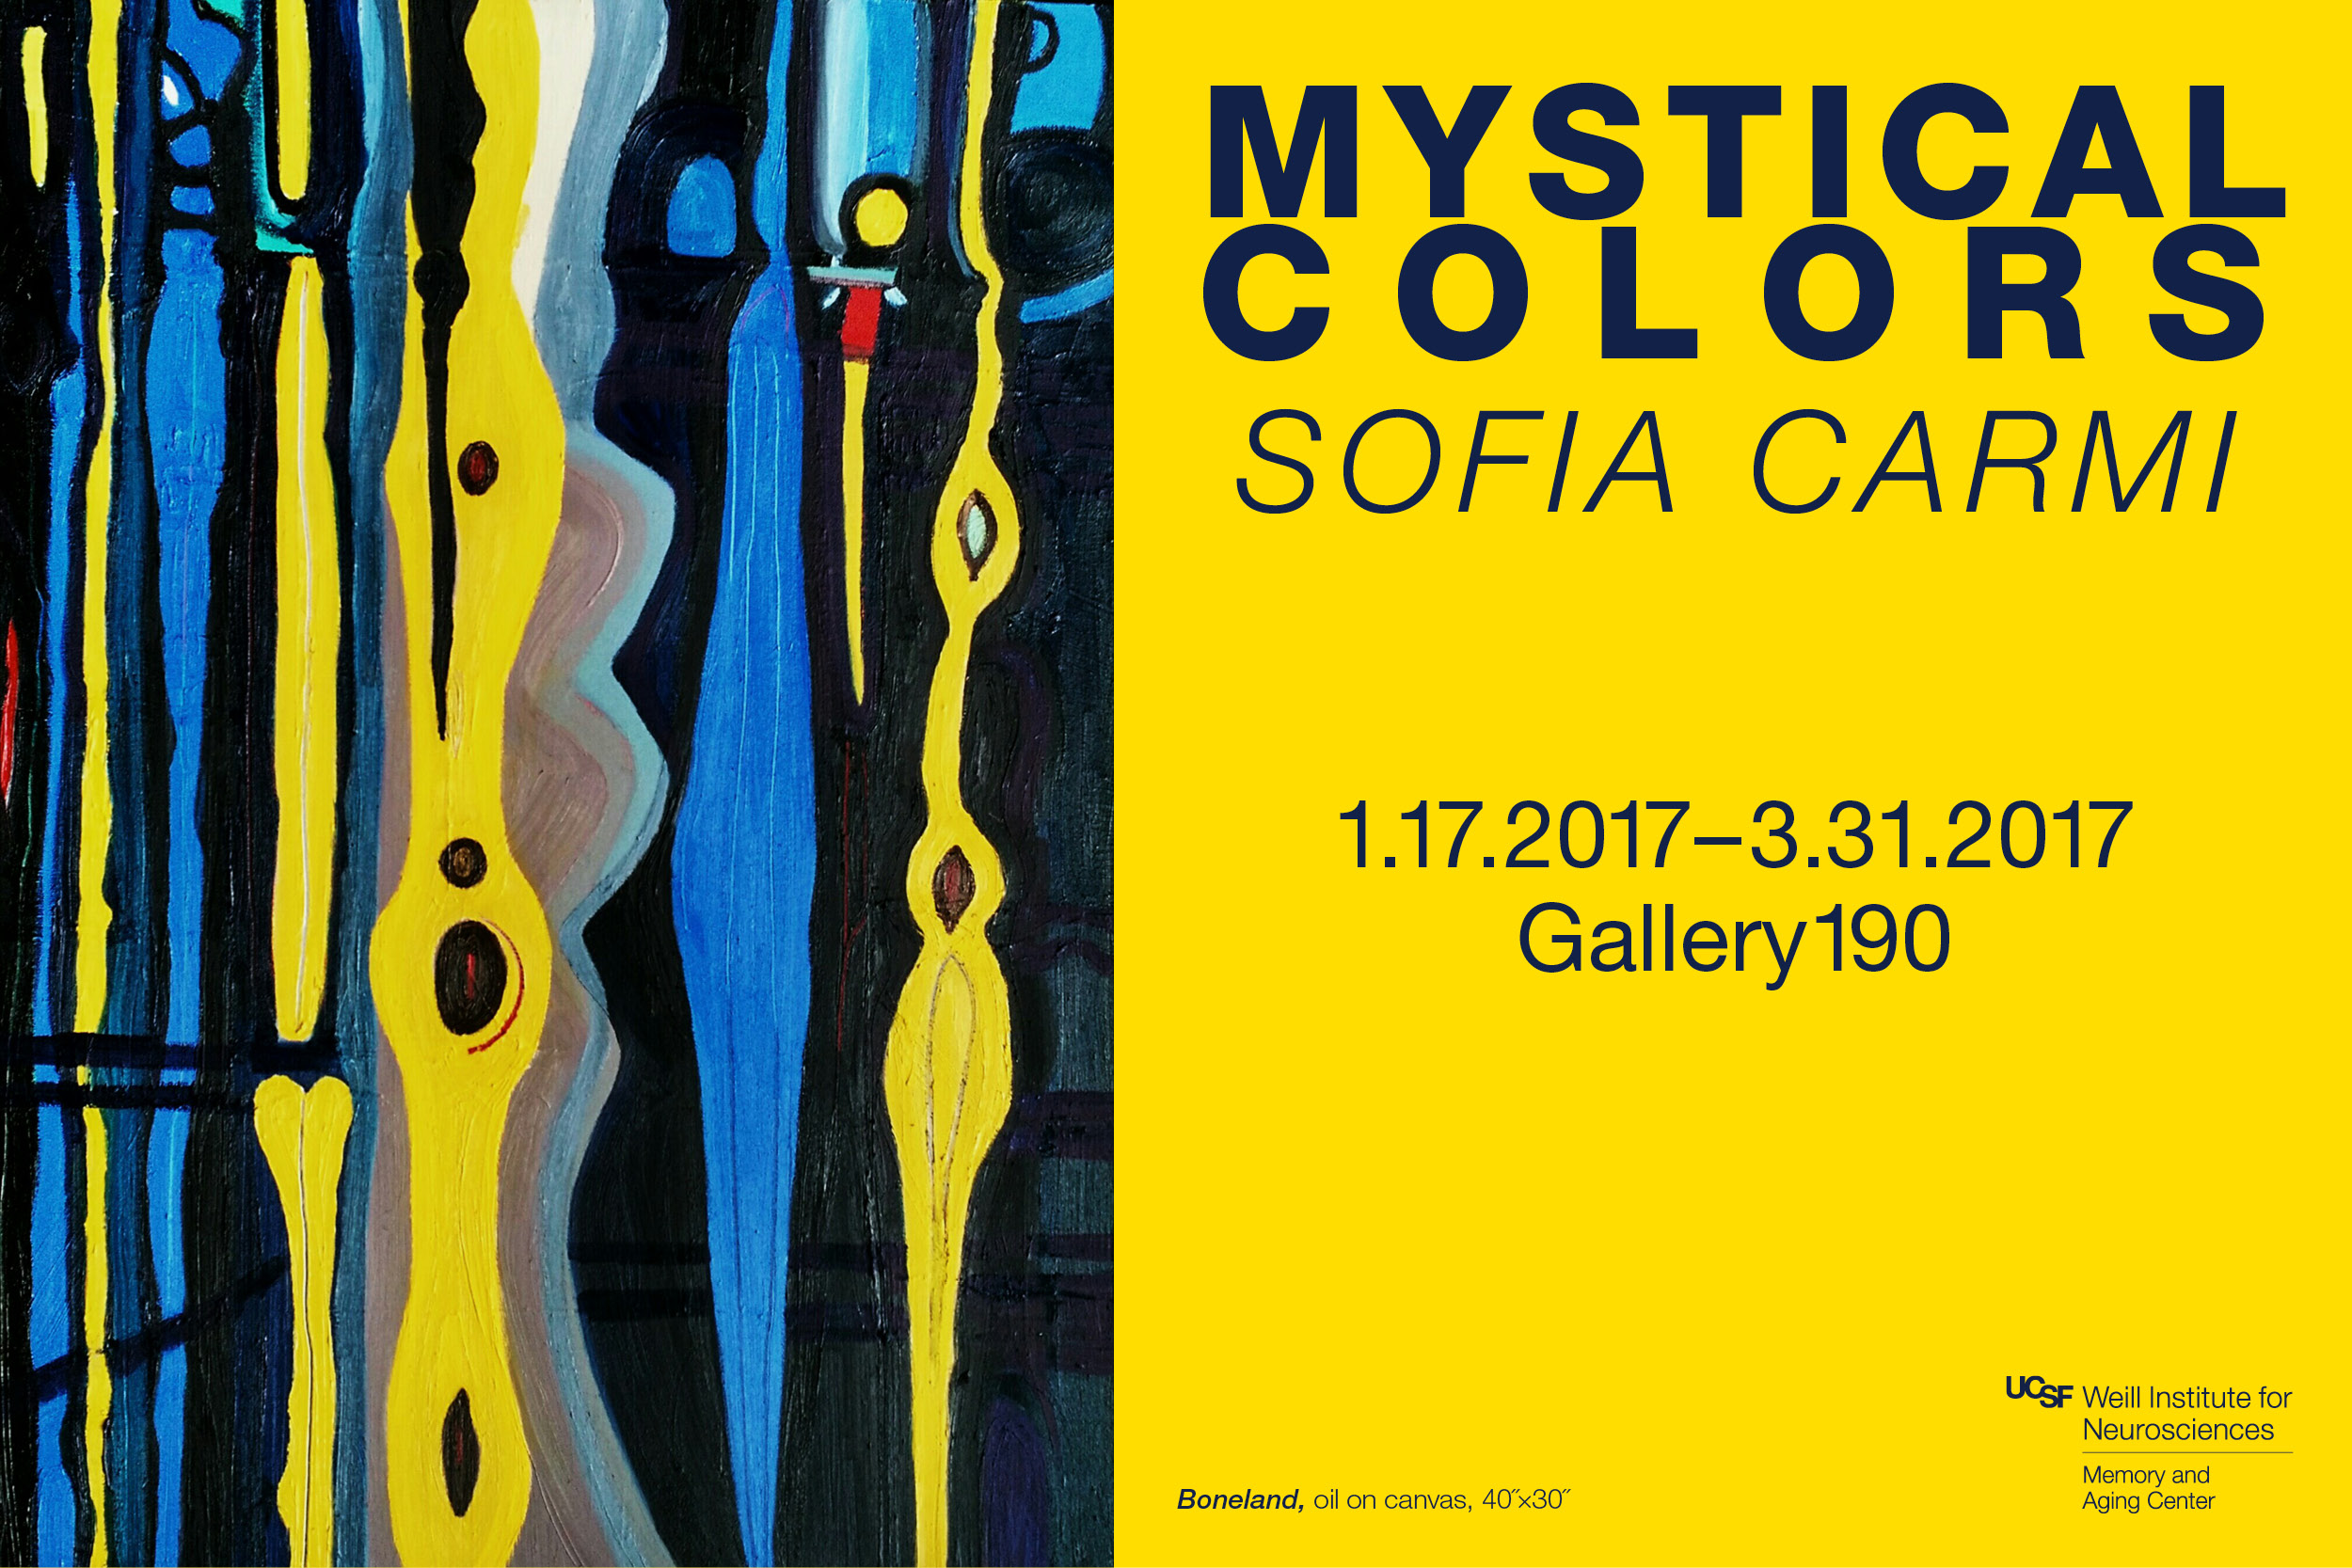 """Mystical Colors"" exhibit by Sofia Carmi"